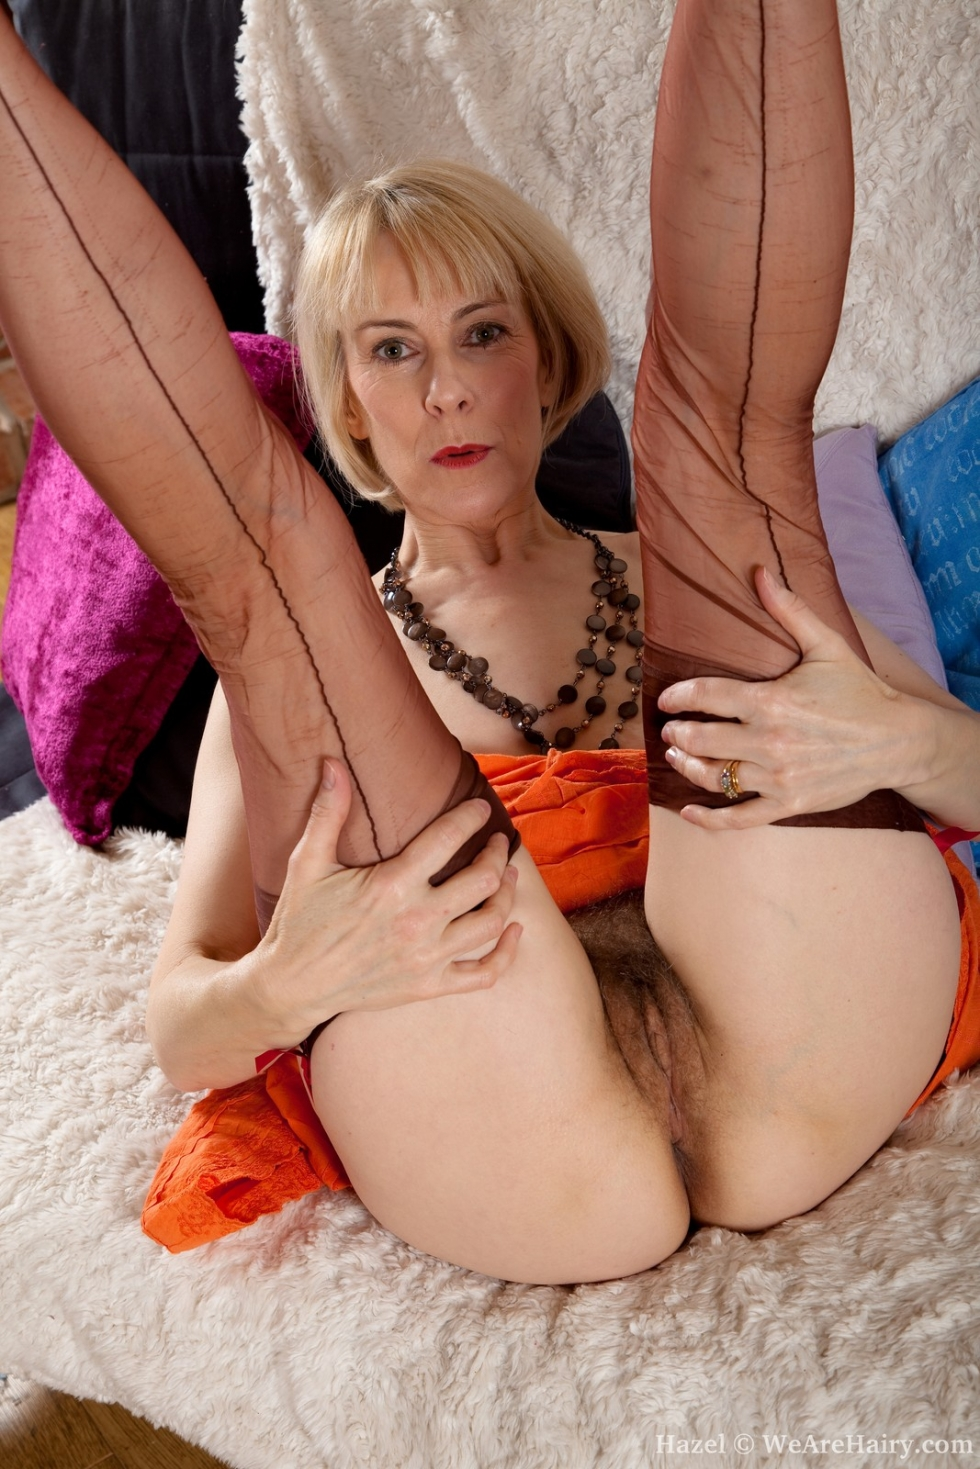 Aadult mature model hire agree with